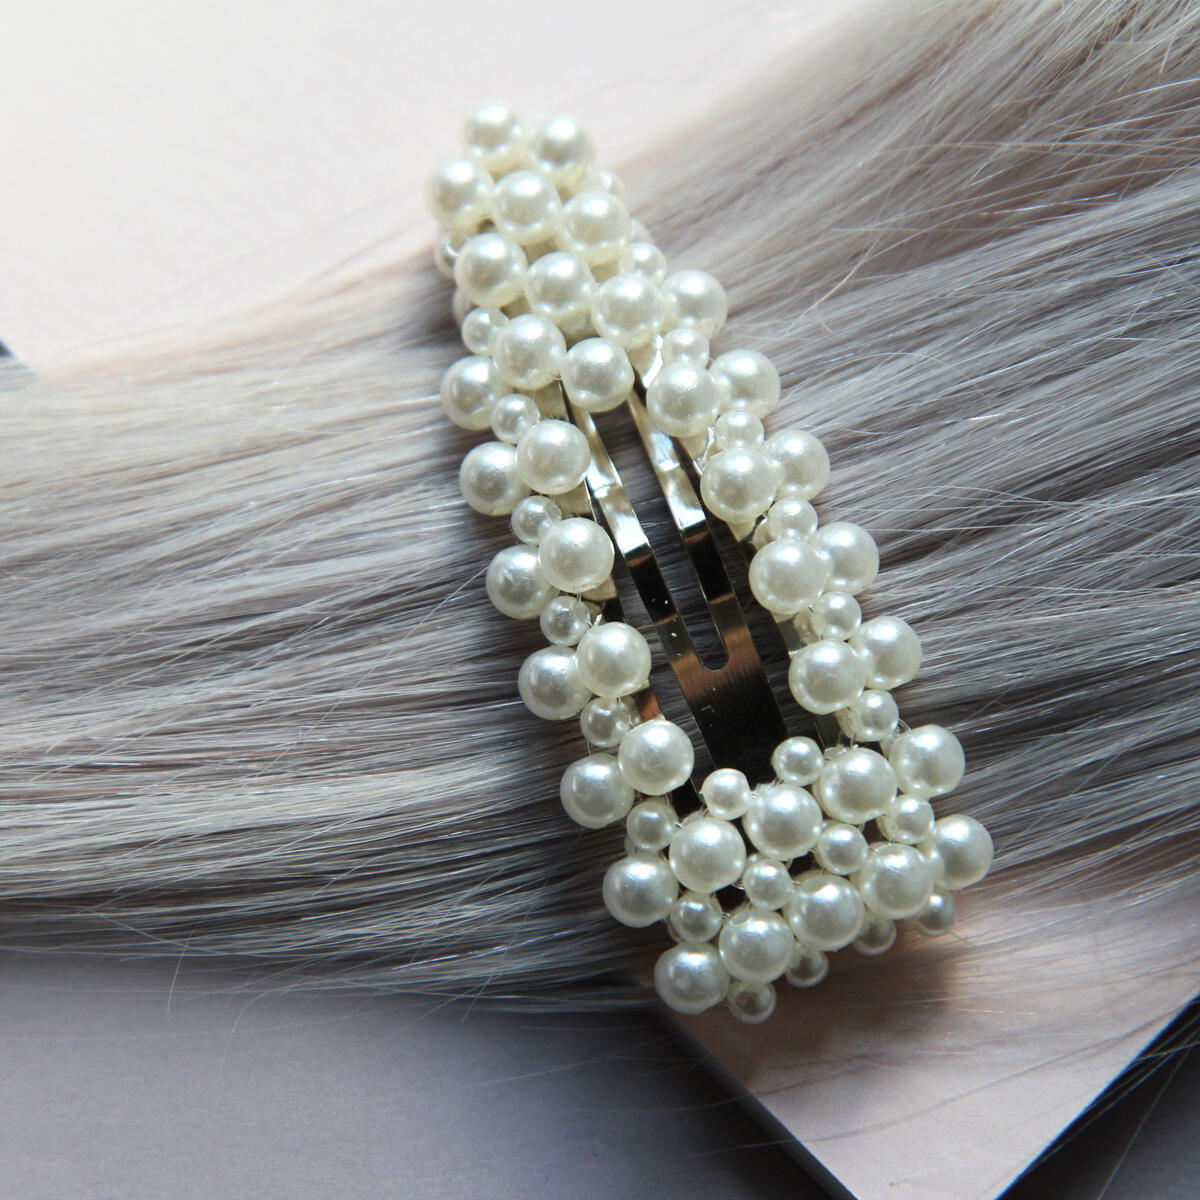 Trendy hair slide with pearls Pearl Collection no. 10 null